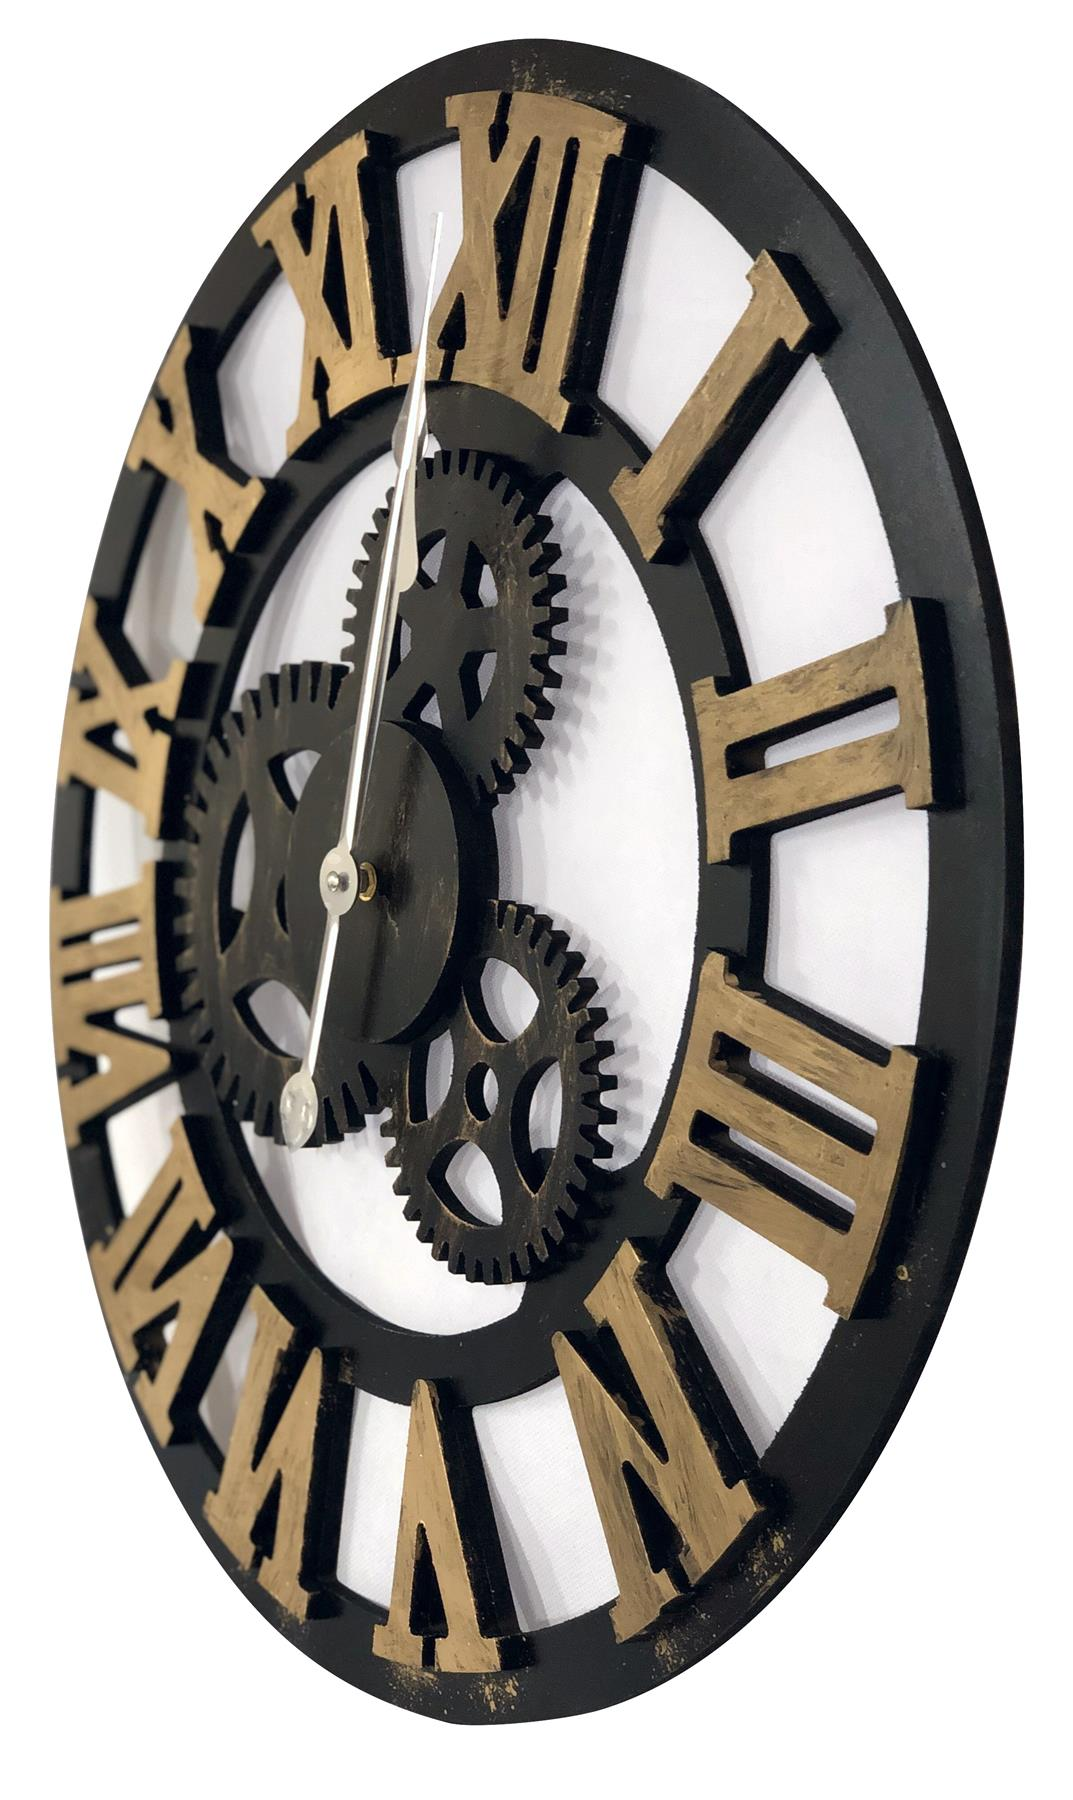 Large Wooden Skeleton Roman Numeral Wall Clock Black Amp Gold